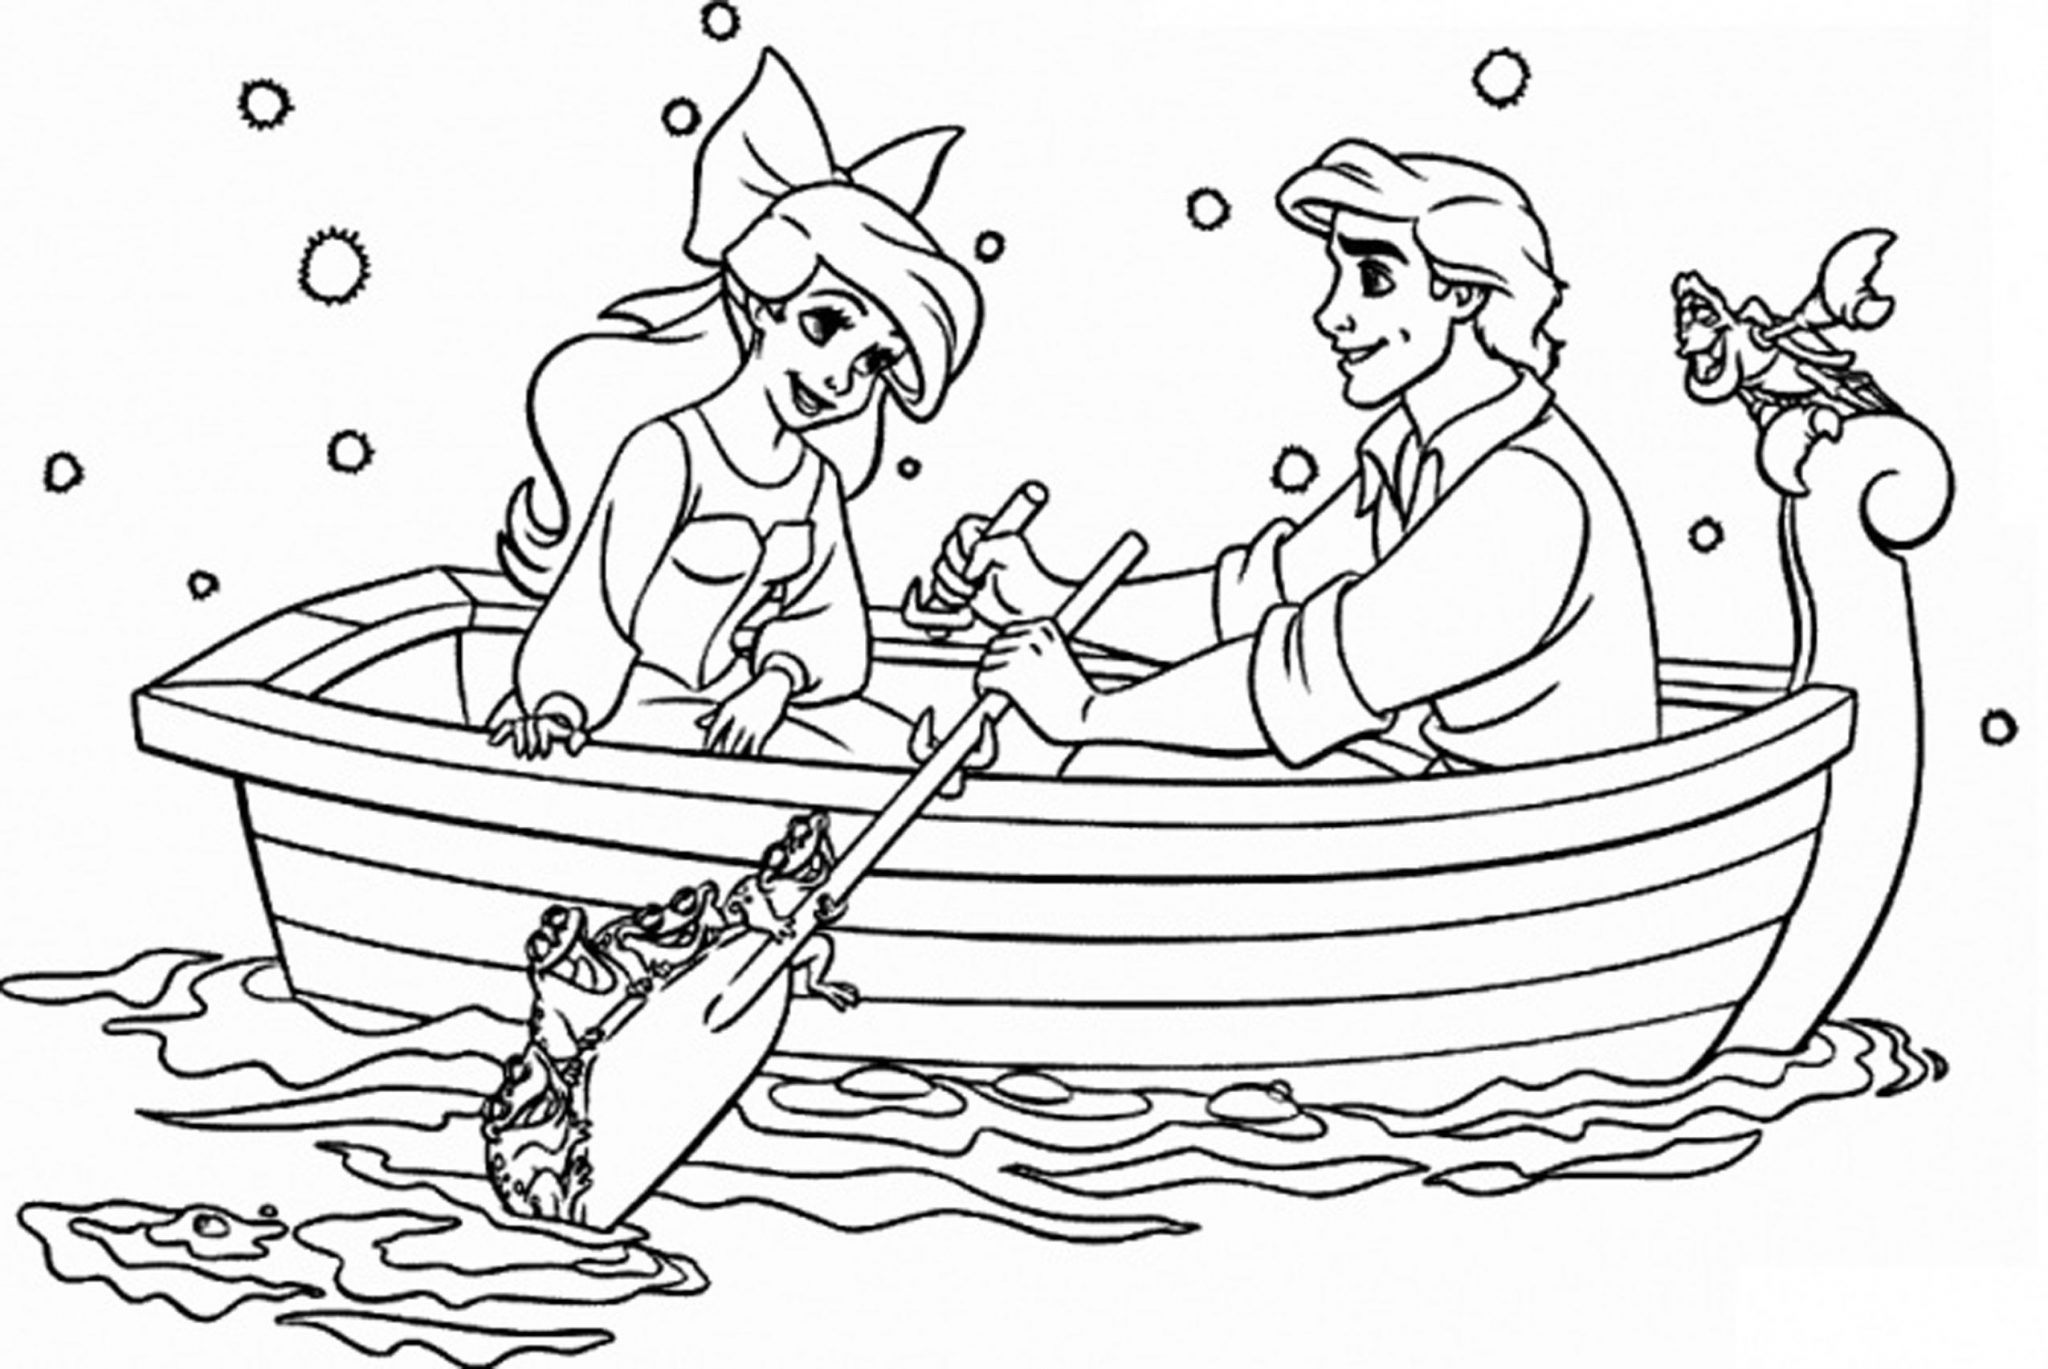 Disney Coloring Pages For Your Children | Coloring Pages ...